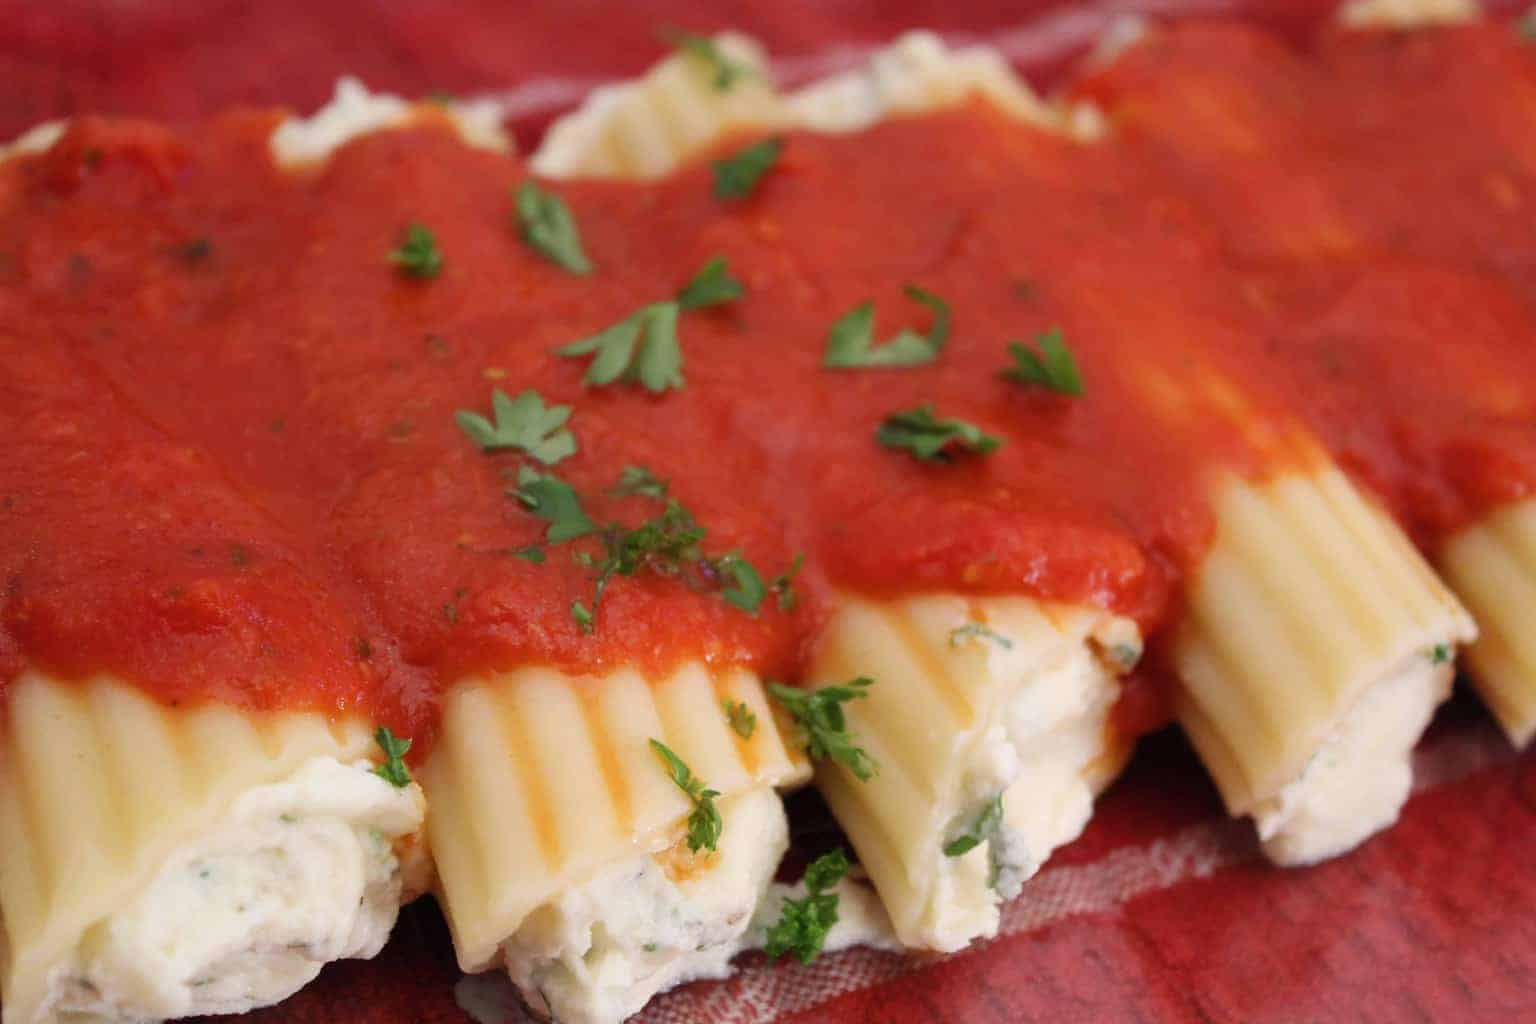 Manicotti shells stuffed with savory ricotta and mozzarella cheeses, topped with San Marzano pasta sauce